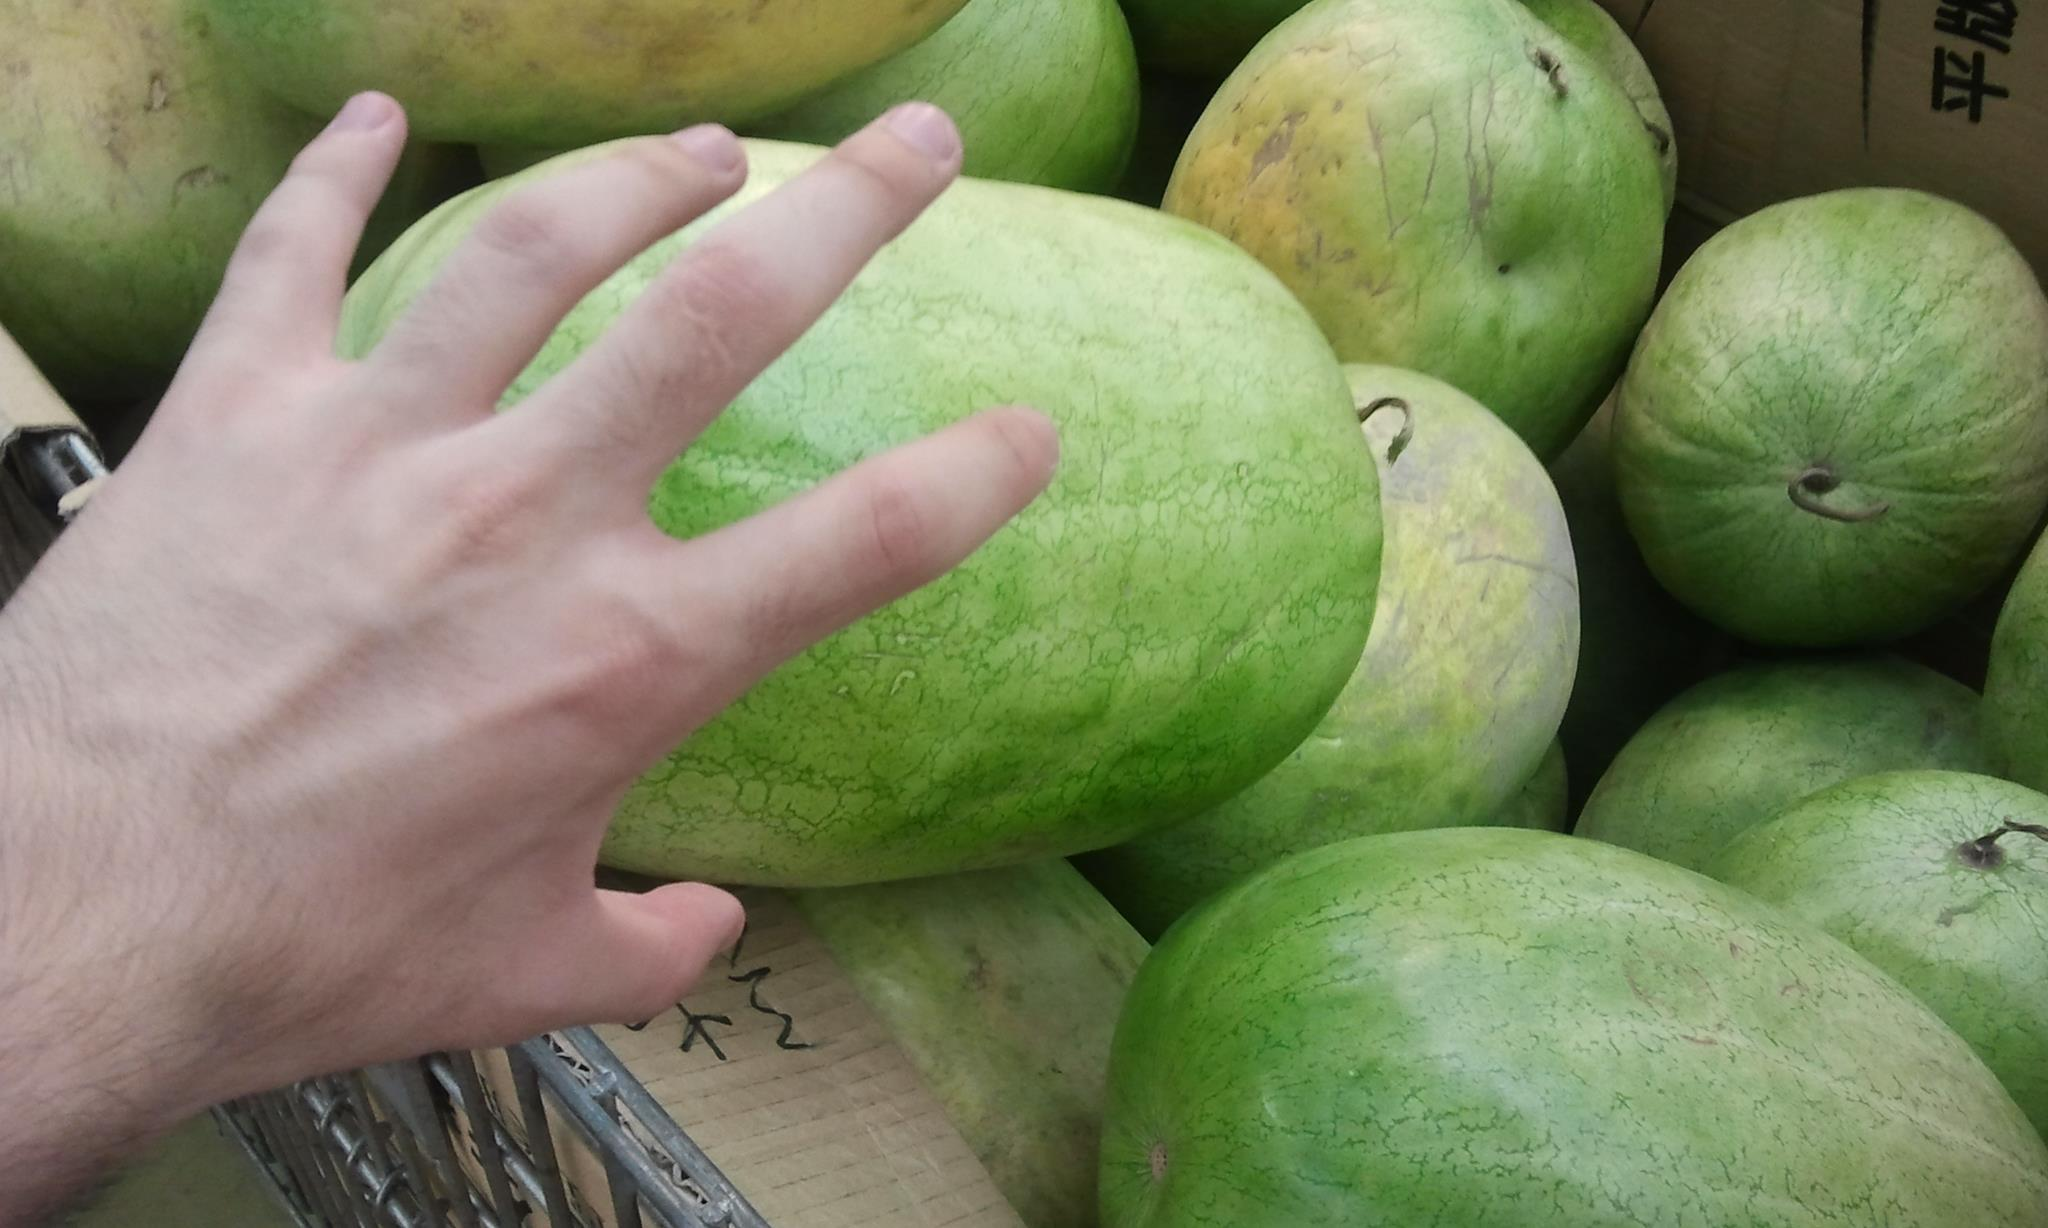 large watermelon aspect ratio human hand